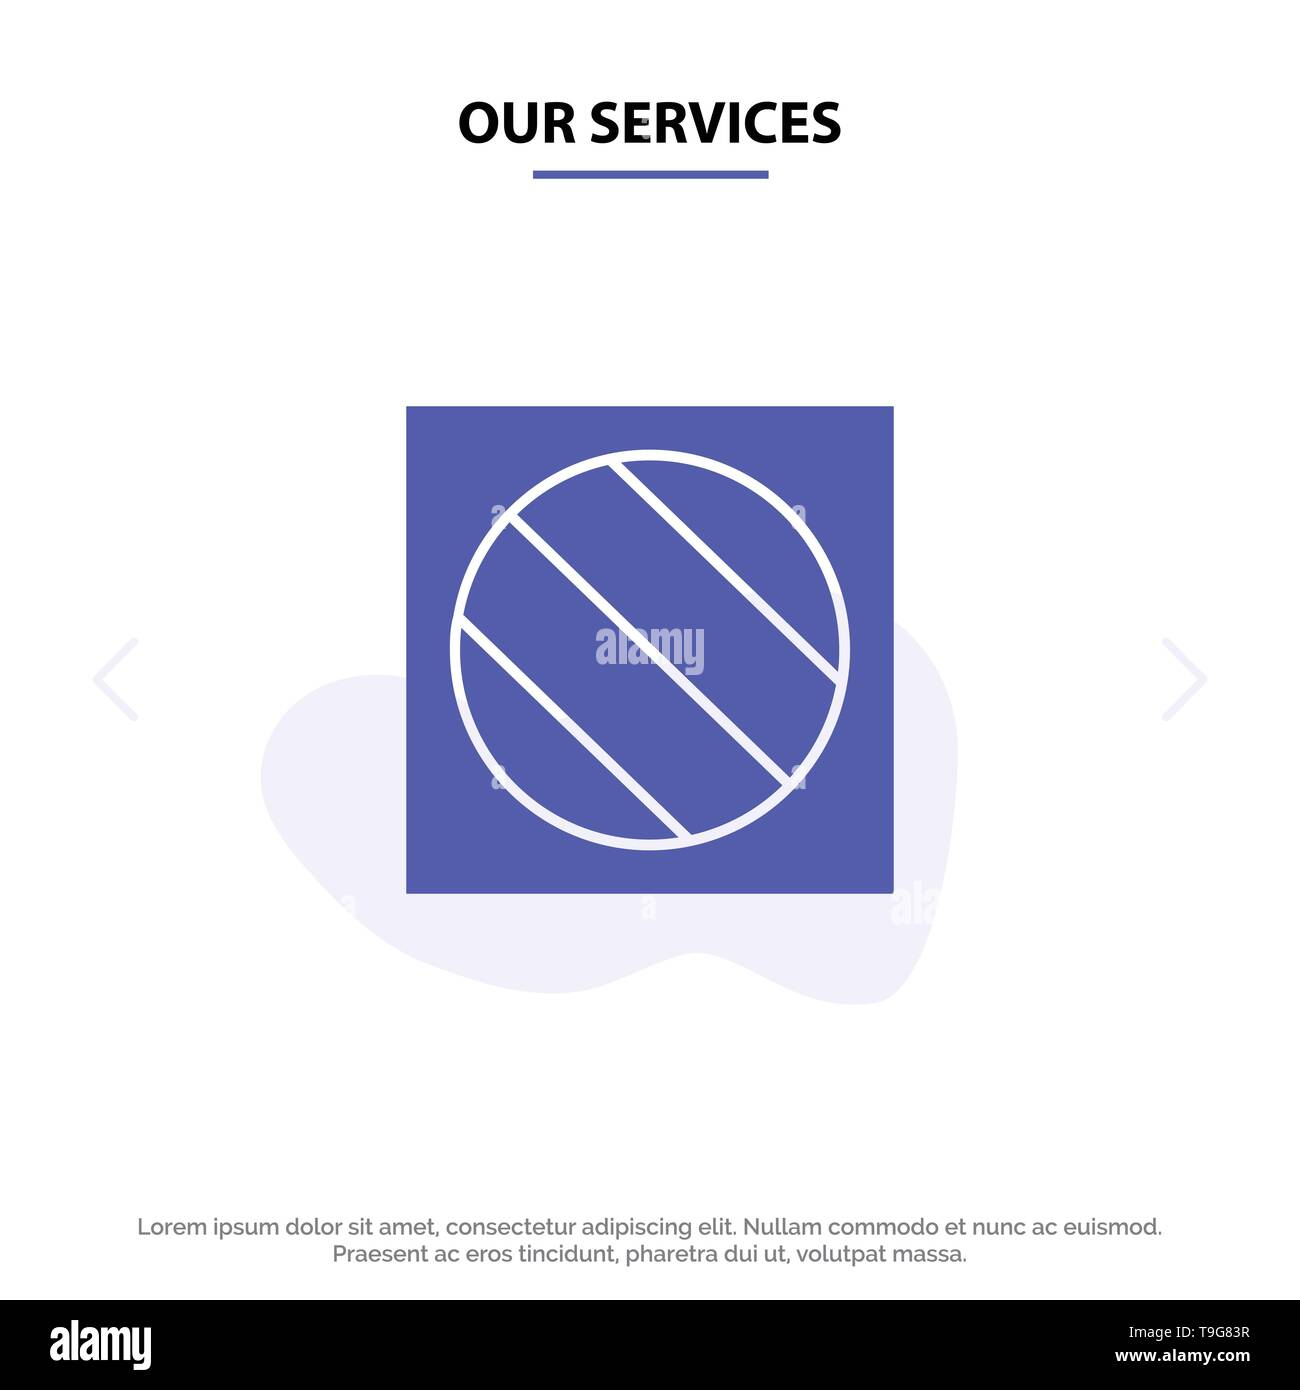 Our Services Full Shadow, Editing, Photo, Shadow Solid Glyph Icon Web card Template - Stock Image